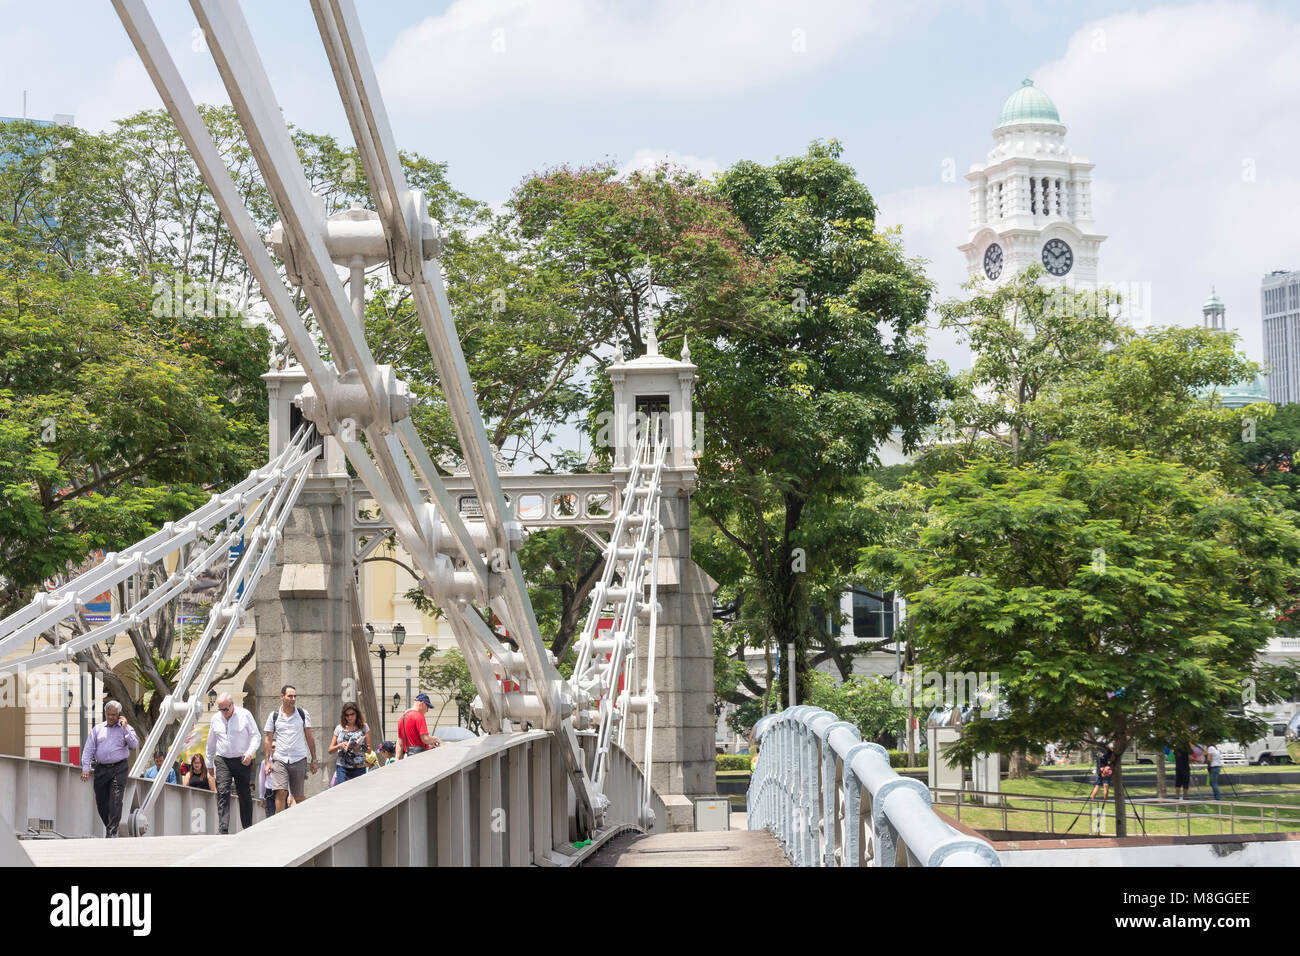 View of Cavenagh Bridge and Victoria Theatre tower from Empress Place, Civic District, Singapore Island, Singapore - Stock Image